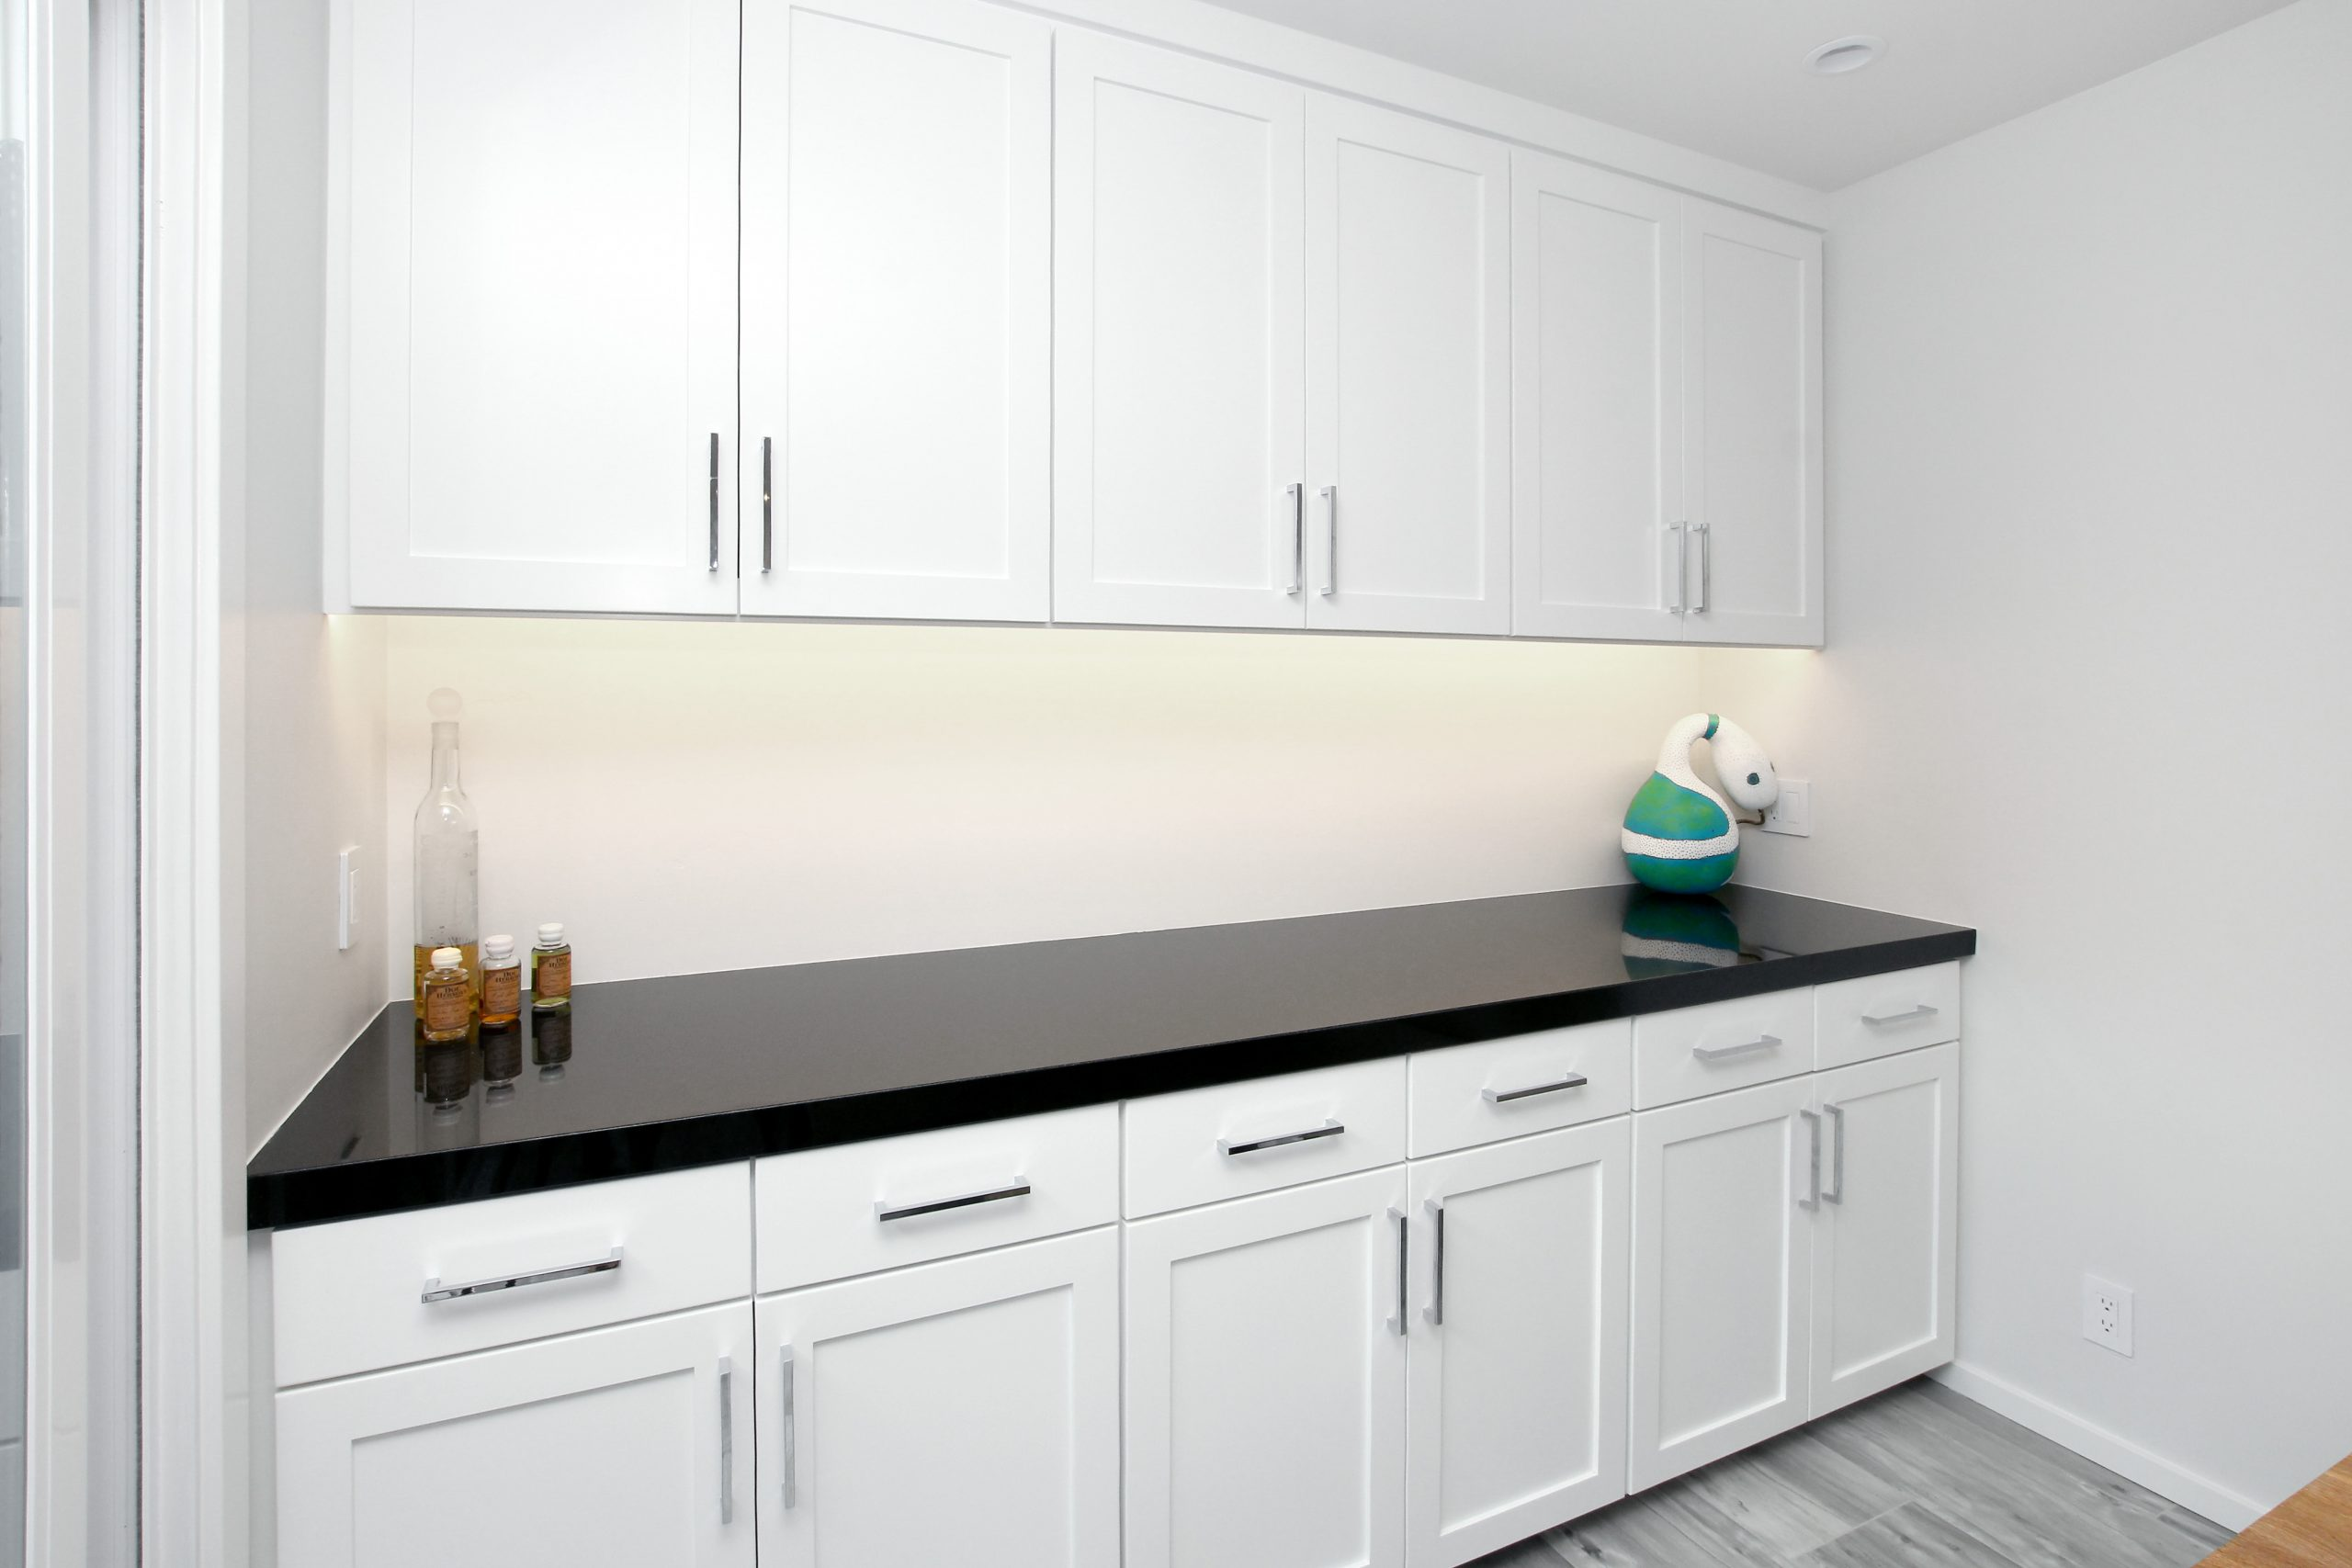 Making-the-Connection-Whole-House-and-Bathroom-Remodel19-scaled (1)